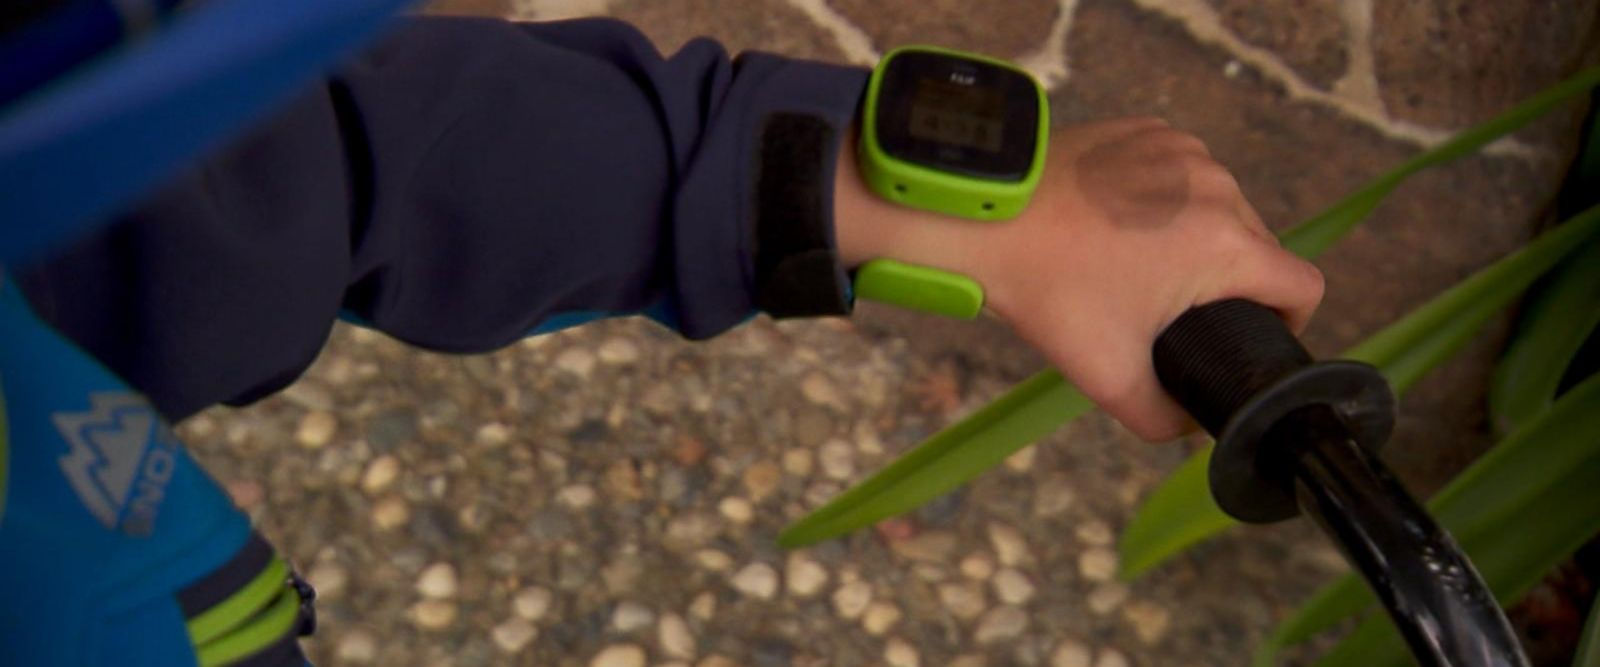 VIDEO: New study raises questions about kids' privacy and smart watches